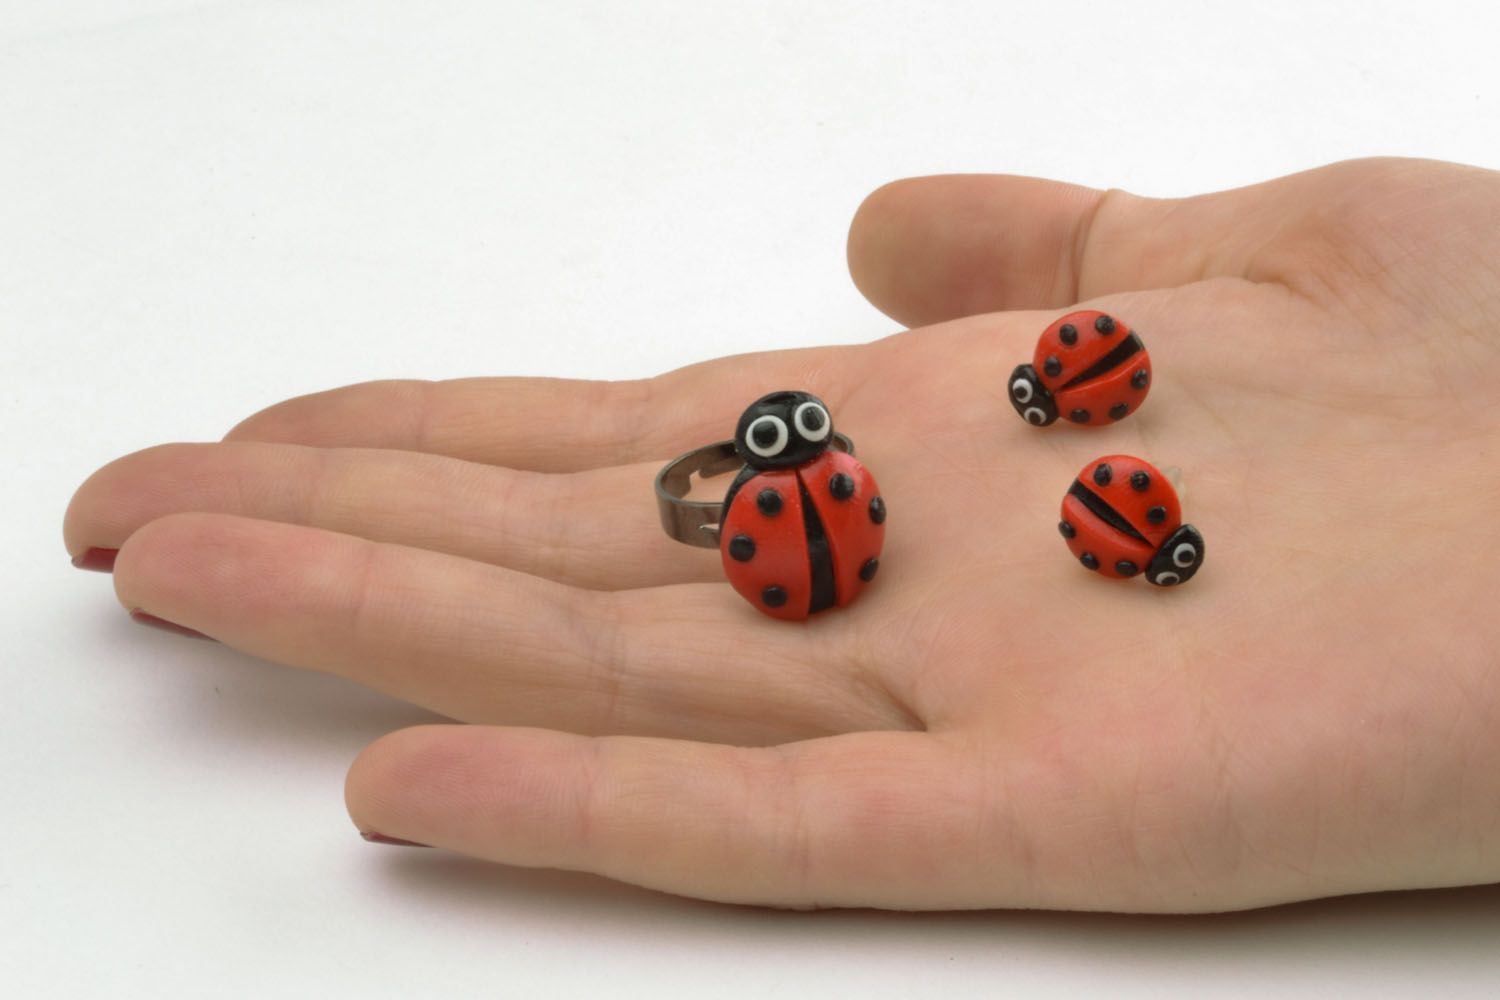 Plastic ring and earrings in the shape of ladybugs photo 2